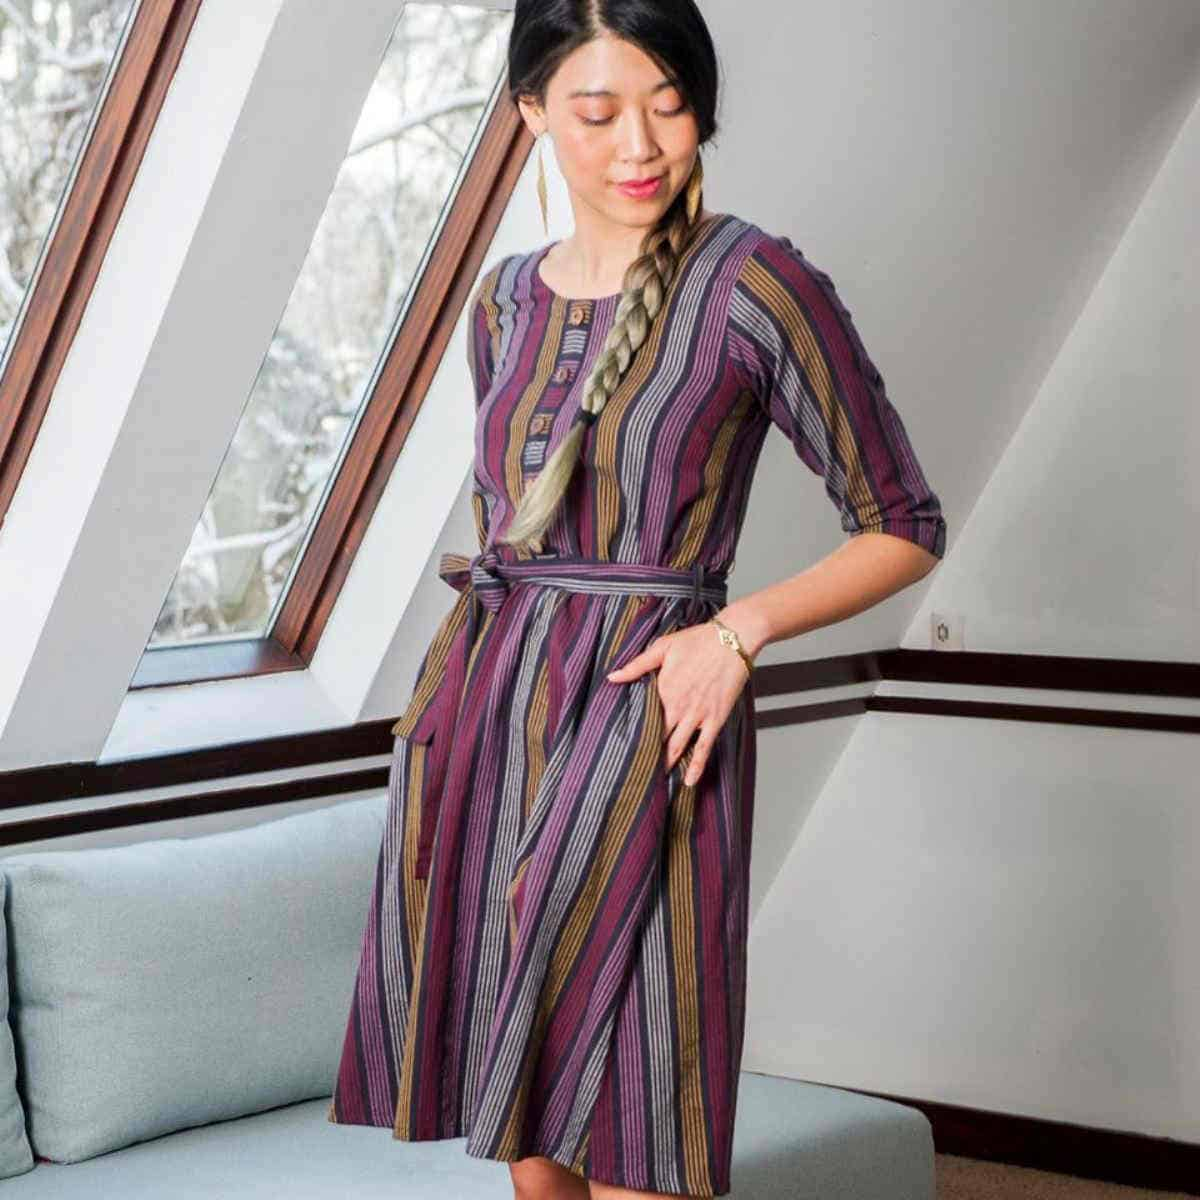 Ethically Made Fair Trade Dresses for Every Eco-cassion Image by Mata Traders #sustainablefashion #fairtrade #ethicallymade